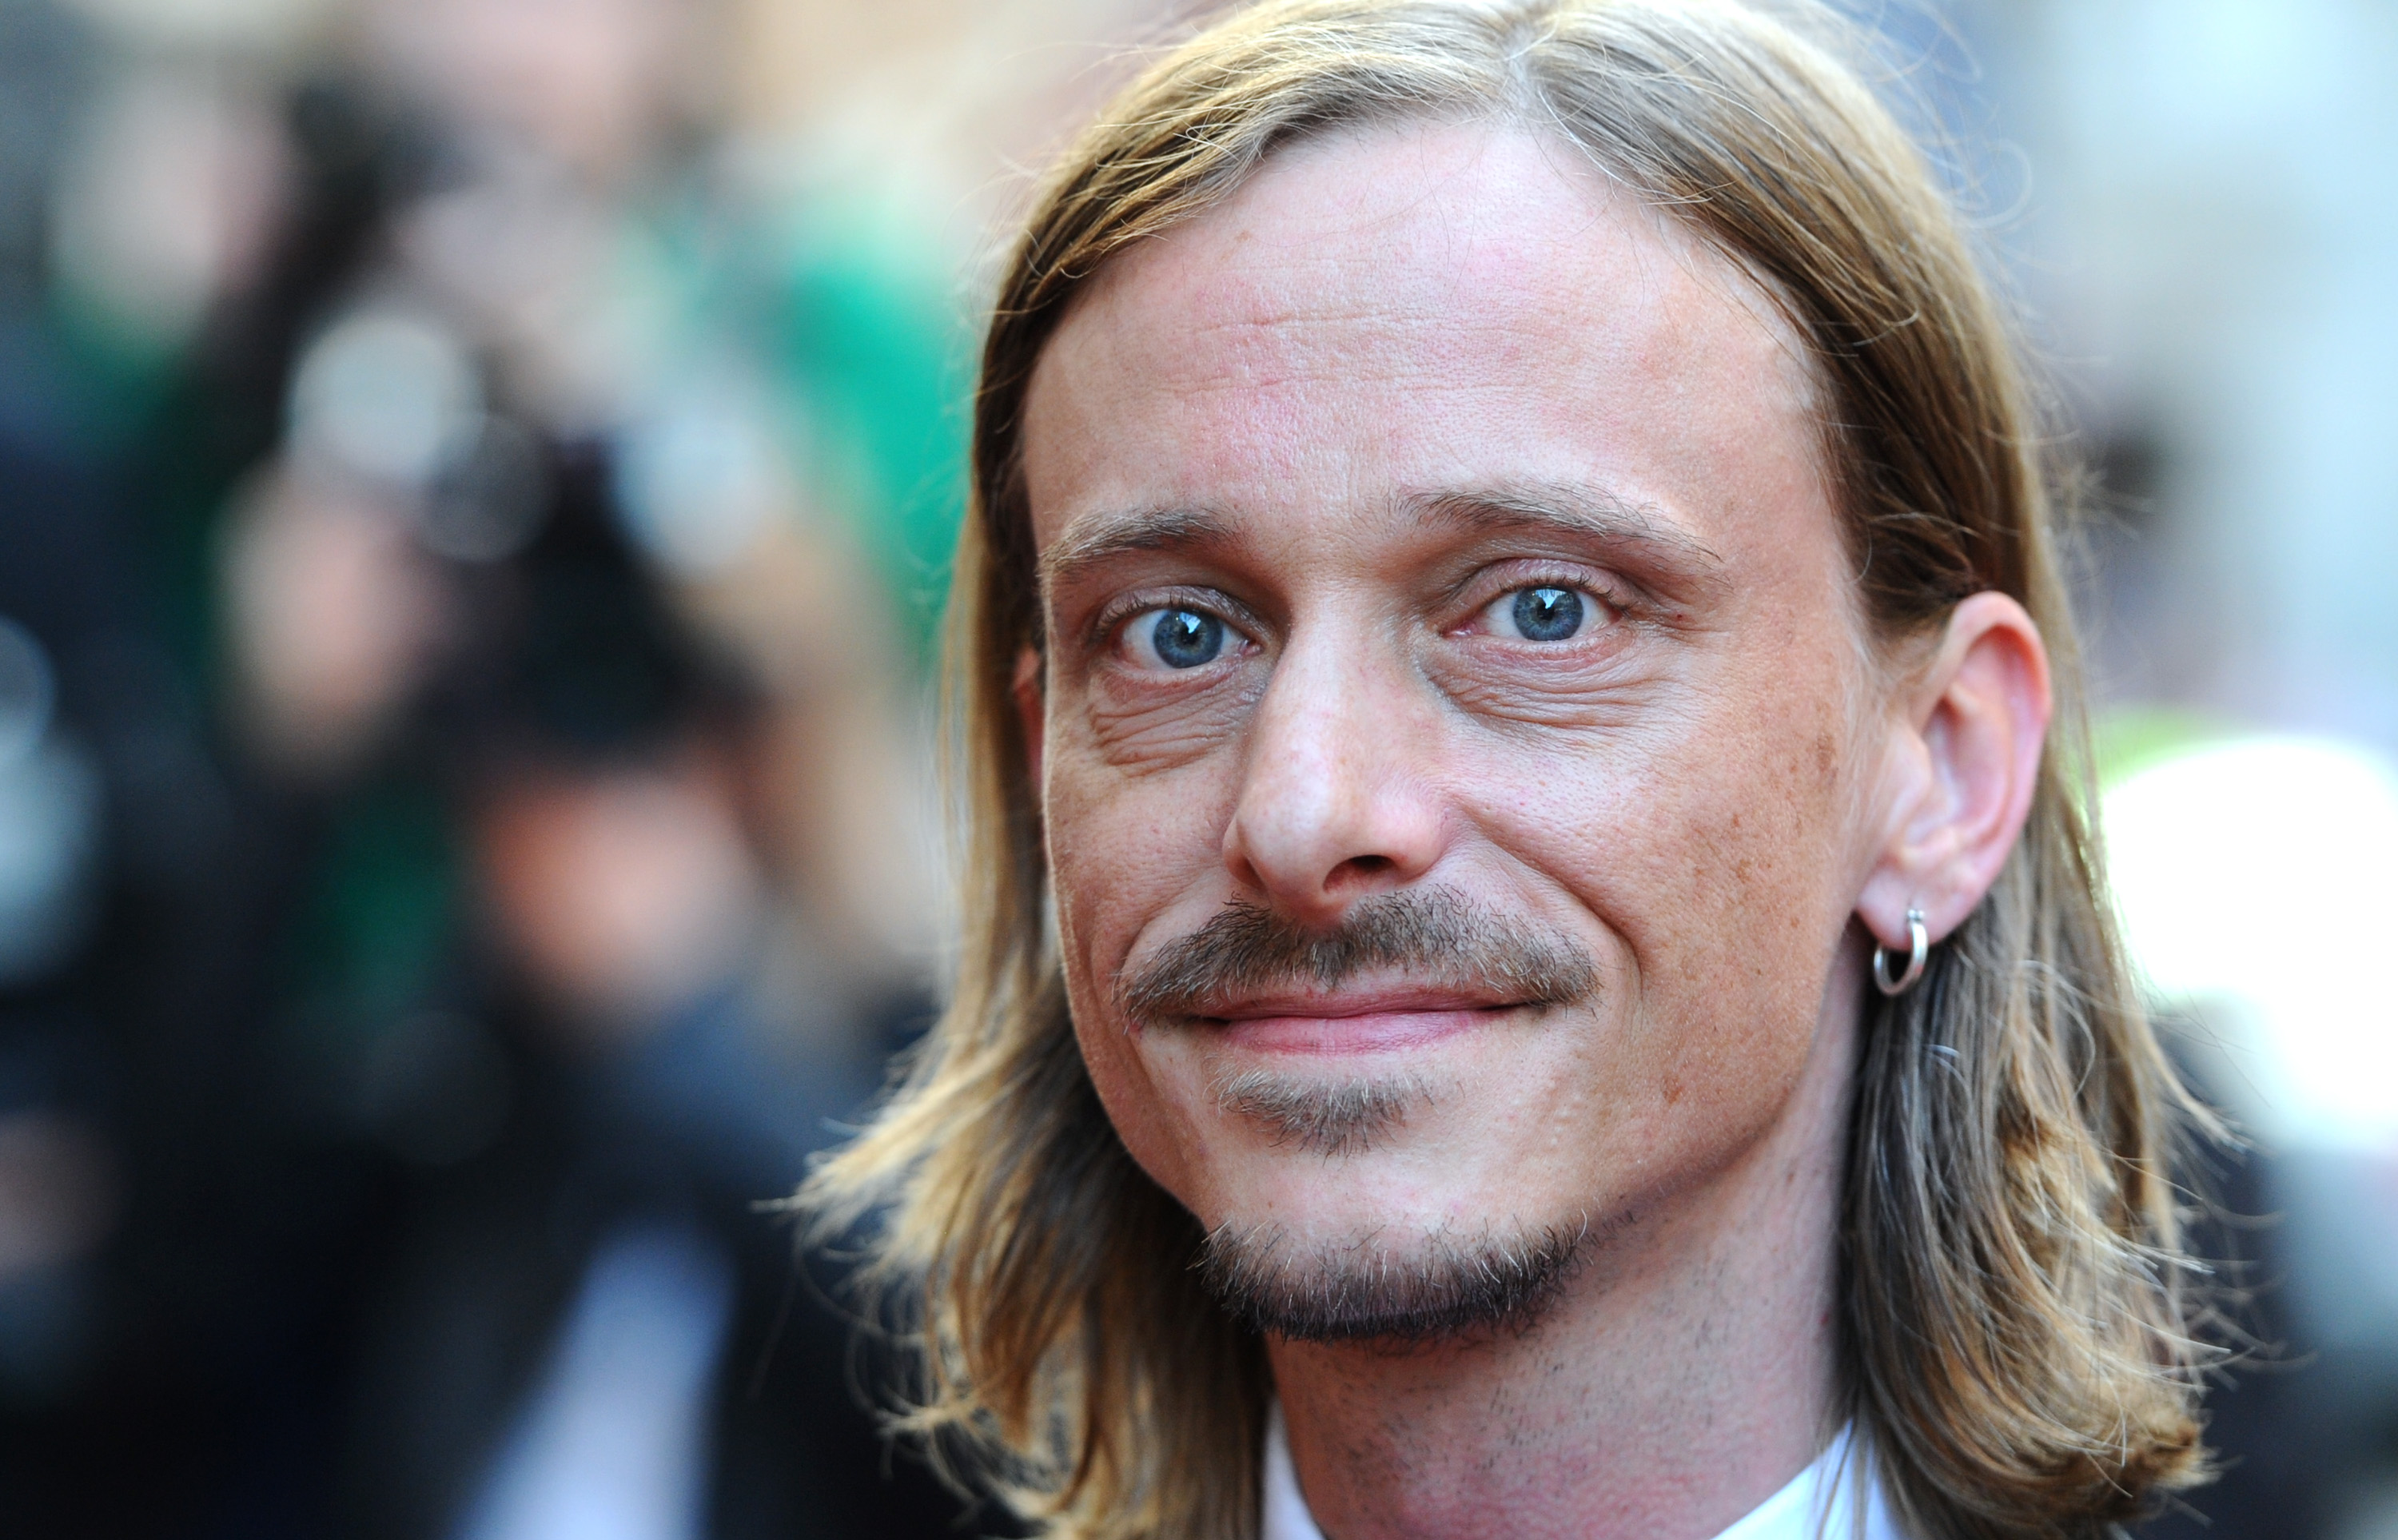 LONDON, ENGLAND - SEPTEMBER 02:  Mackenzie Crook attends the GQ Men of the Year awards at The Royal Opera House on September 2, 2014 in London, England.  (Photo by Anthony Harvey/Getty Images)